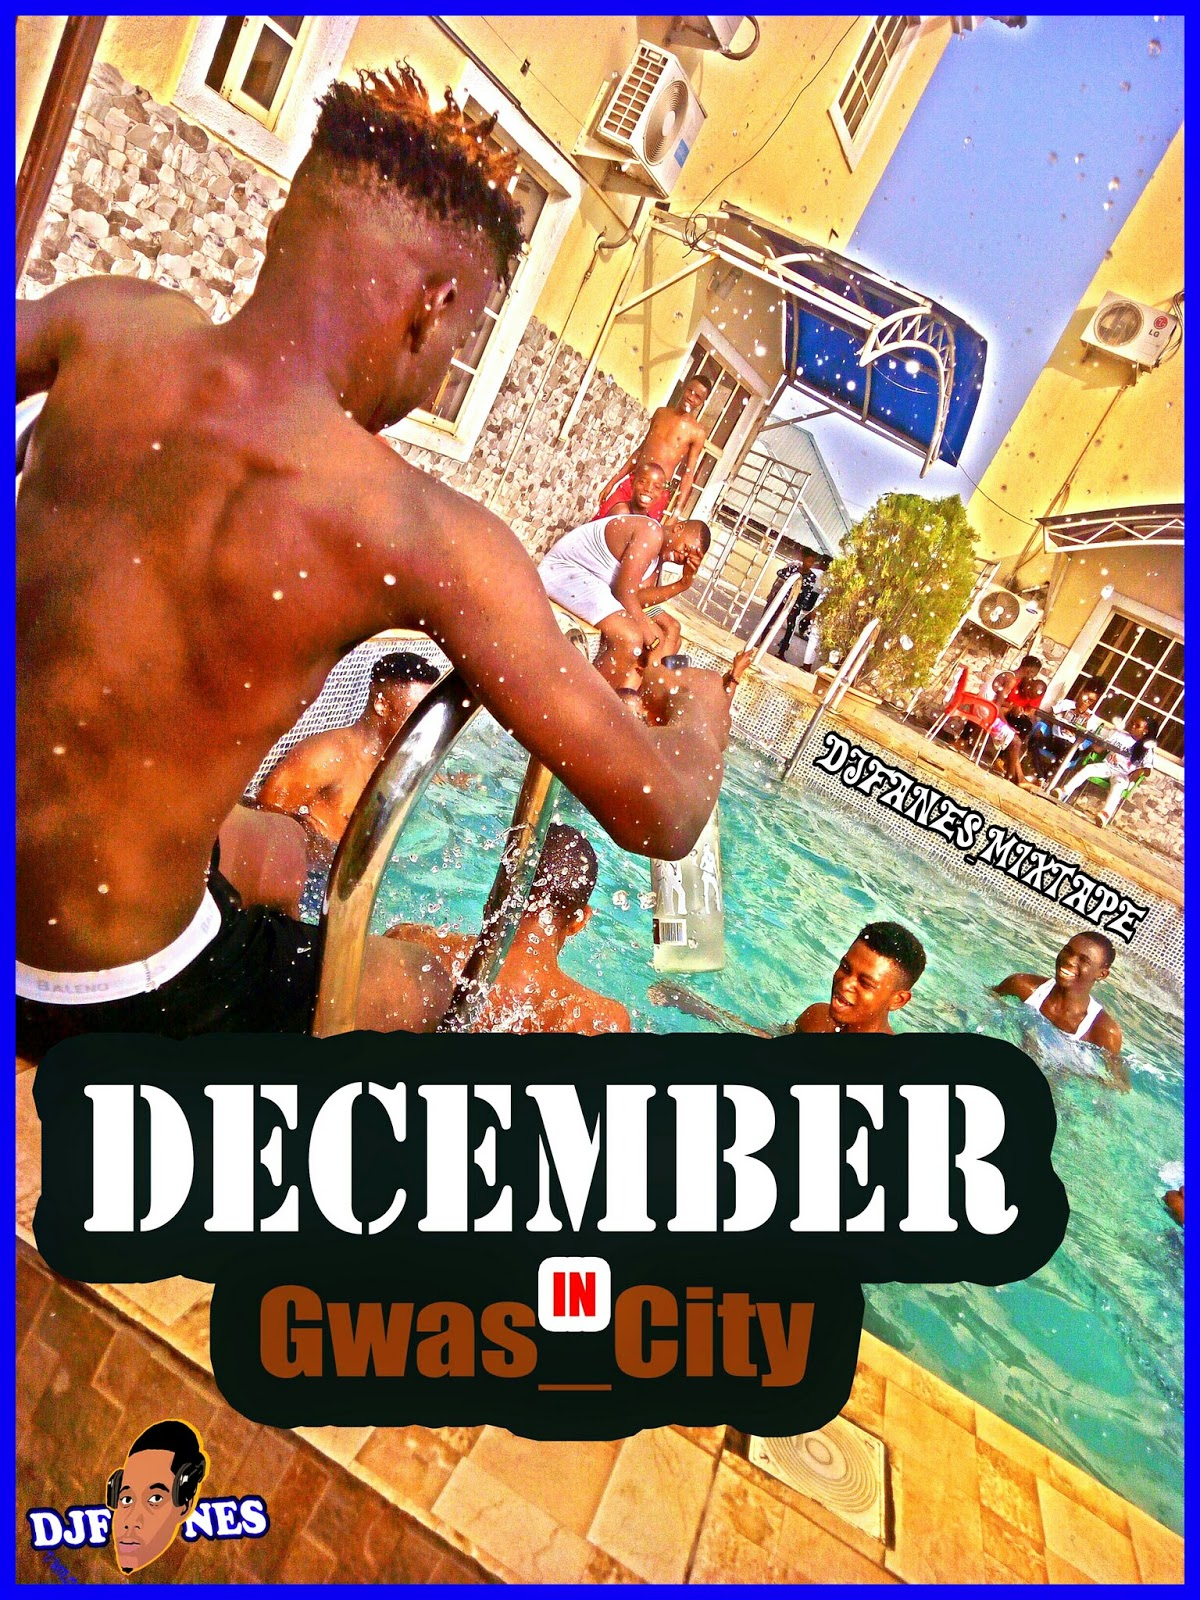 Download Mixtape Djfanes December In Gwas City